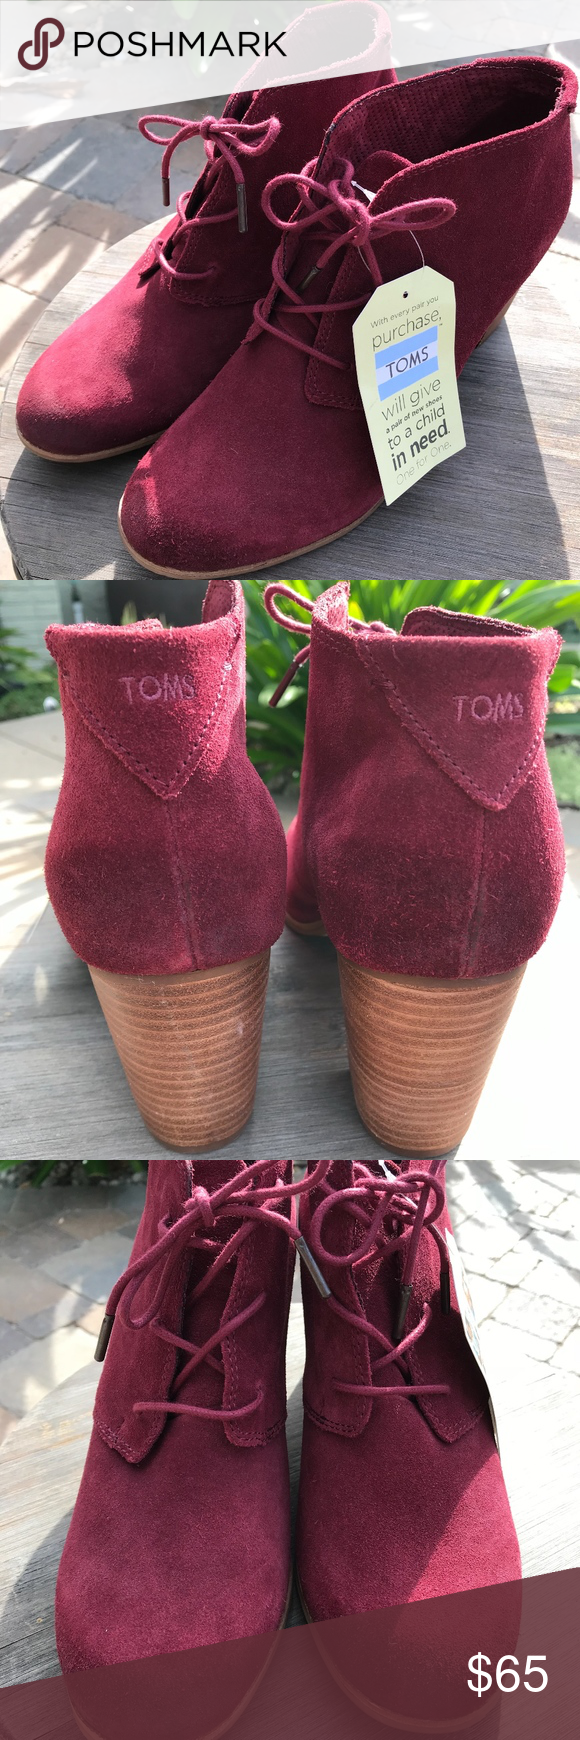 a27c4febf55 Toms Oxblood Burnished Suede Lunata Lace-up Women New With Tag  Toms  Oxblood Burnished Suede Lunata Lace-up Women s Booties Shoes Women s size  12 Leather ...